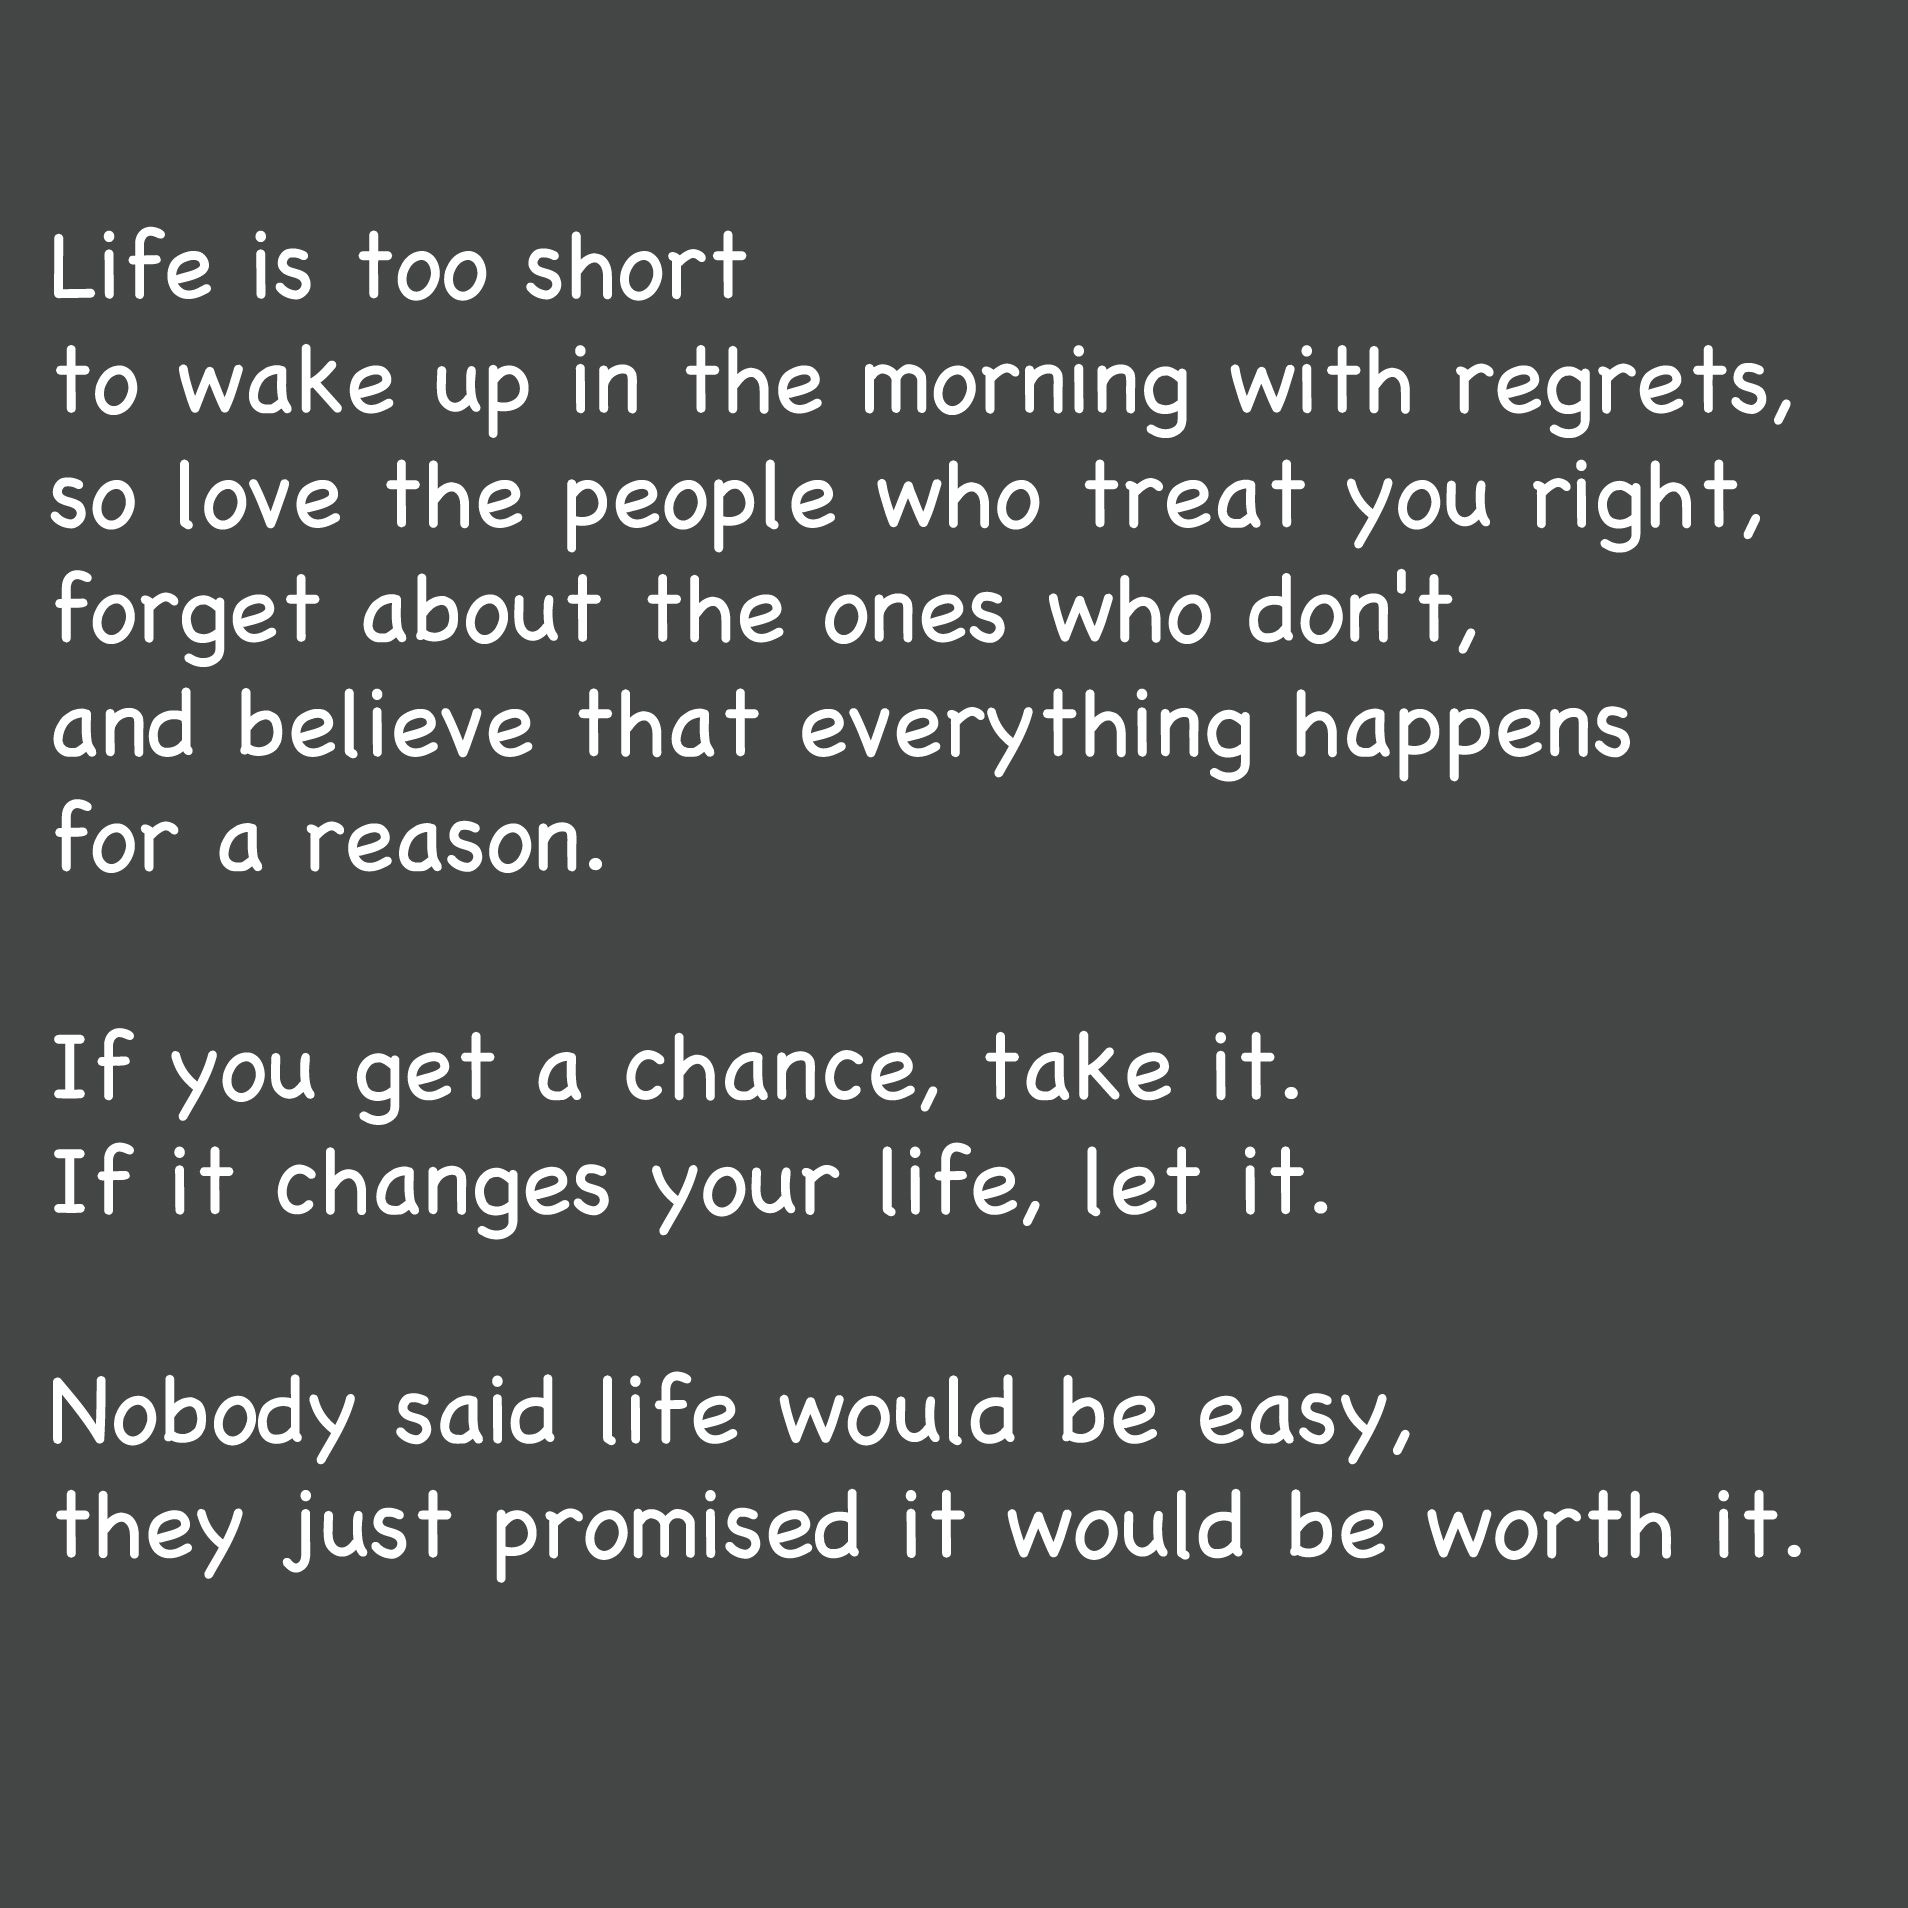 Life is too short to wake up in the morning with regrets ...